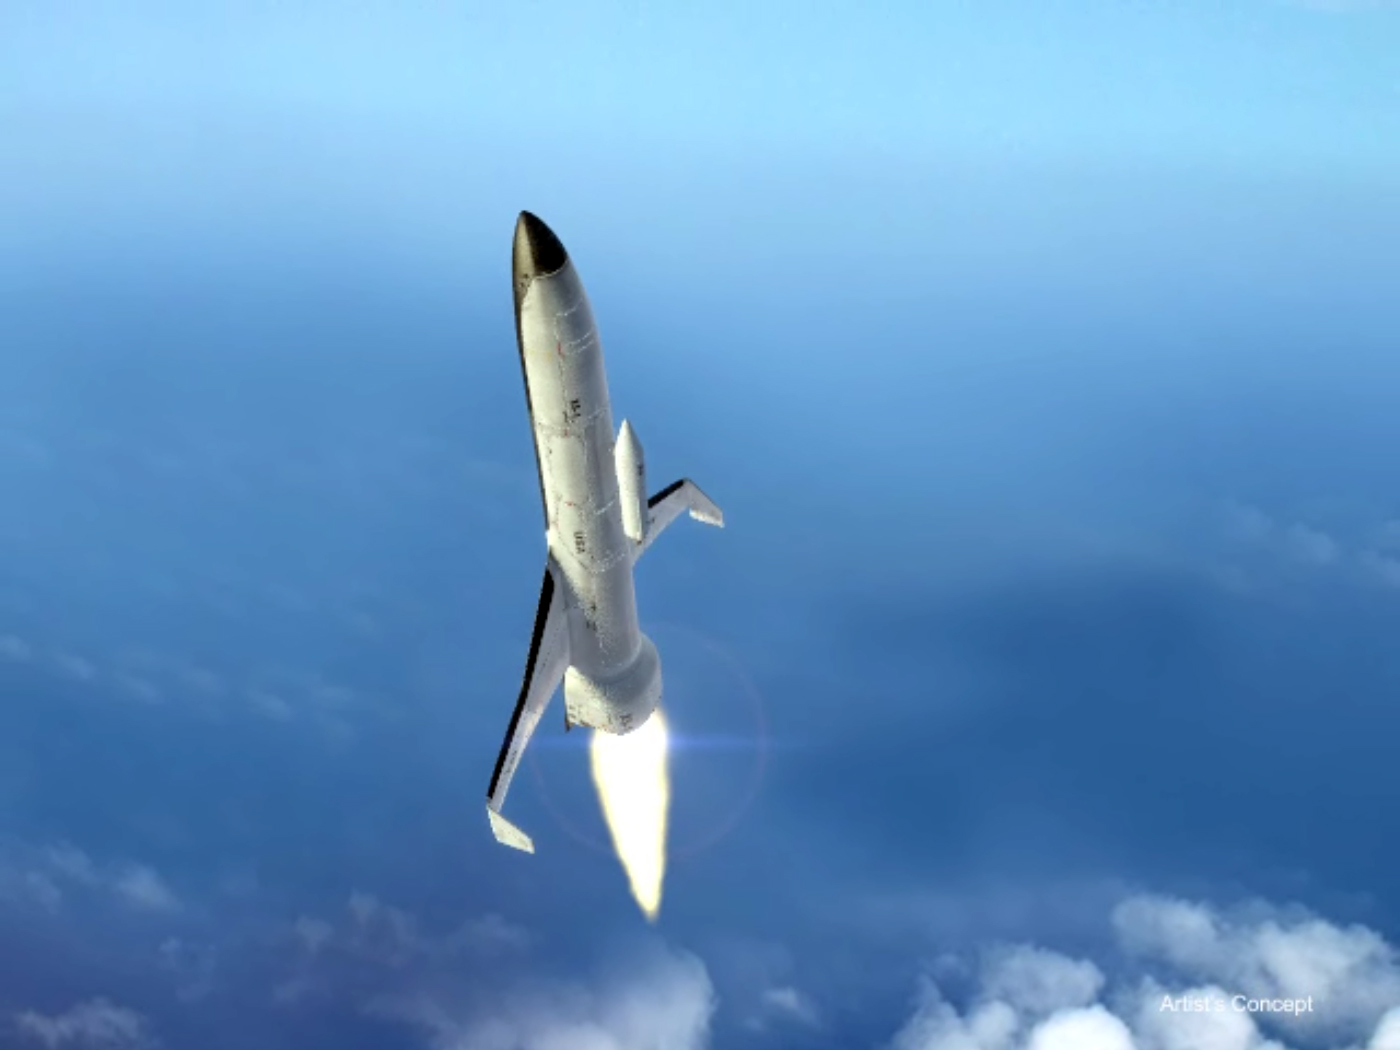 XS-1 Space Plane Ascent Illustration